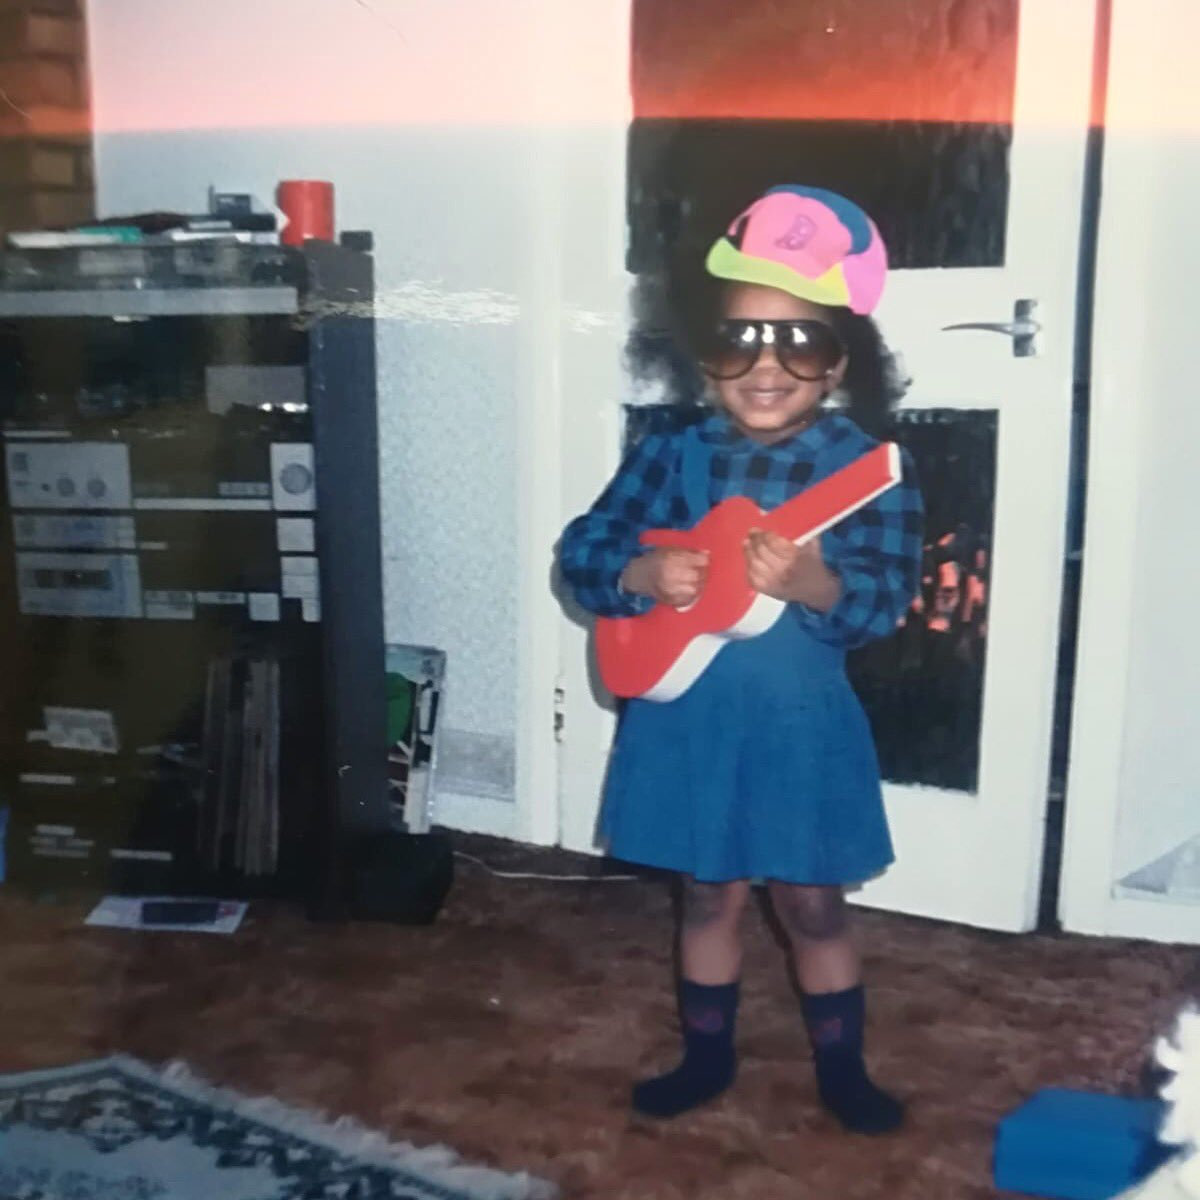 Running tings. #tbt #fromwheniwasyoung #thatstereotho #tapes #90s #goodtimes #music #toyguitars #musicalfamily #imissthe90s pic.twitter.com/fz7iVlWjwB